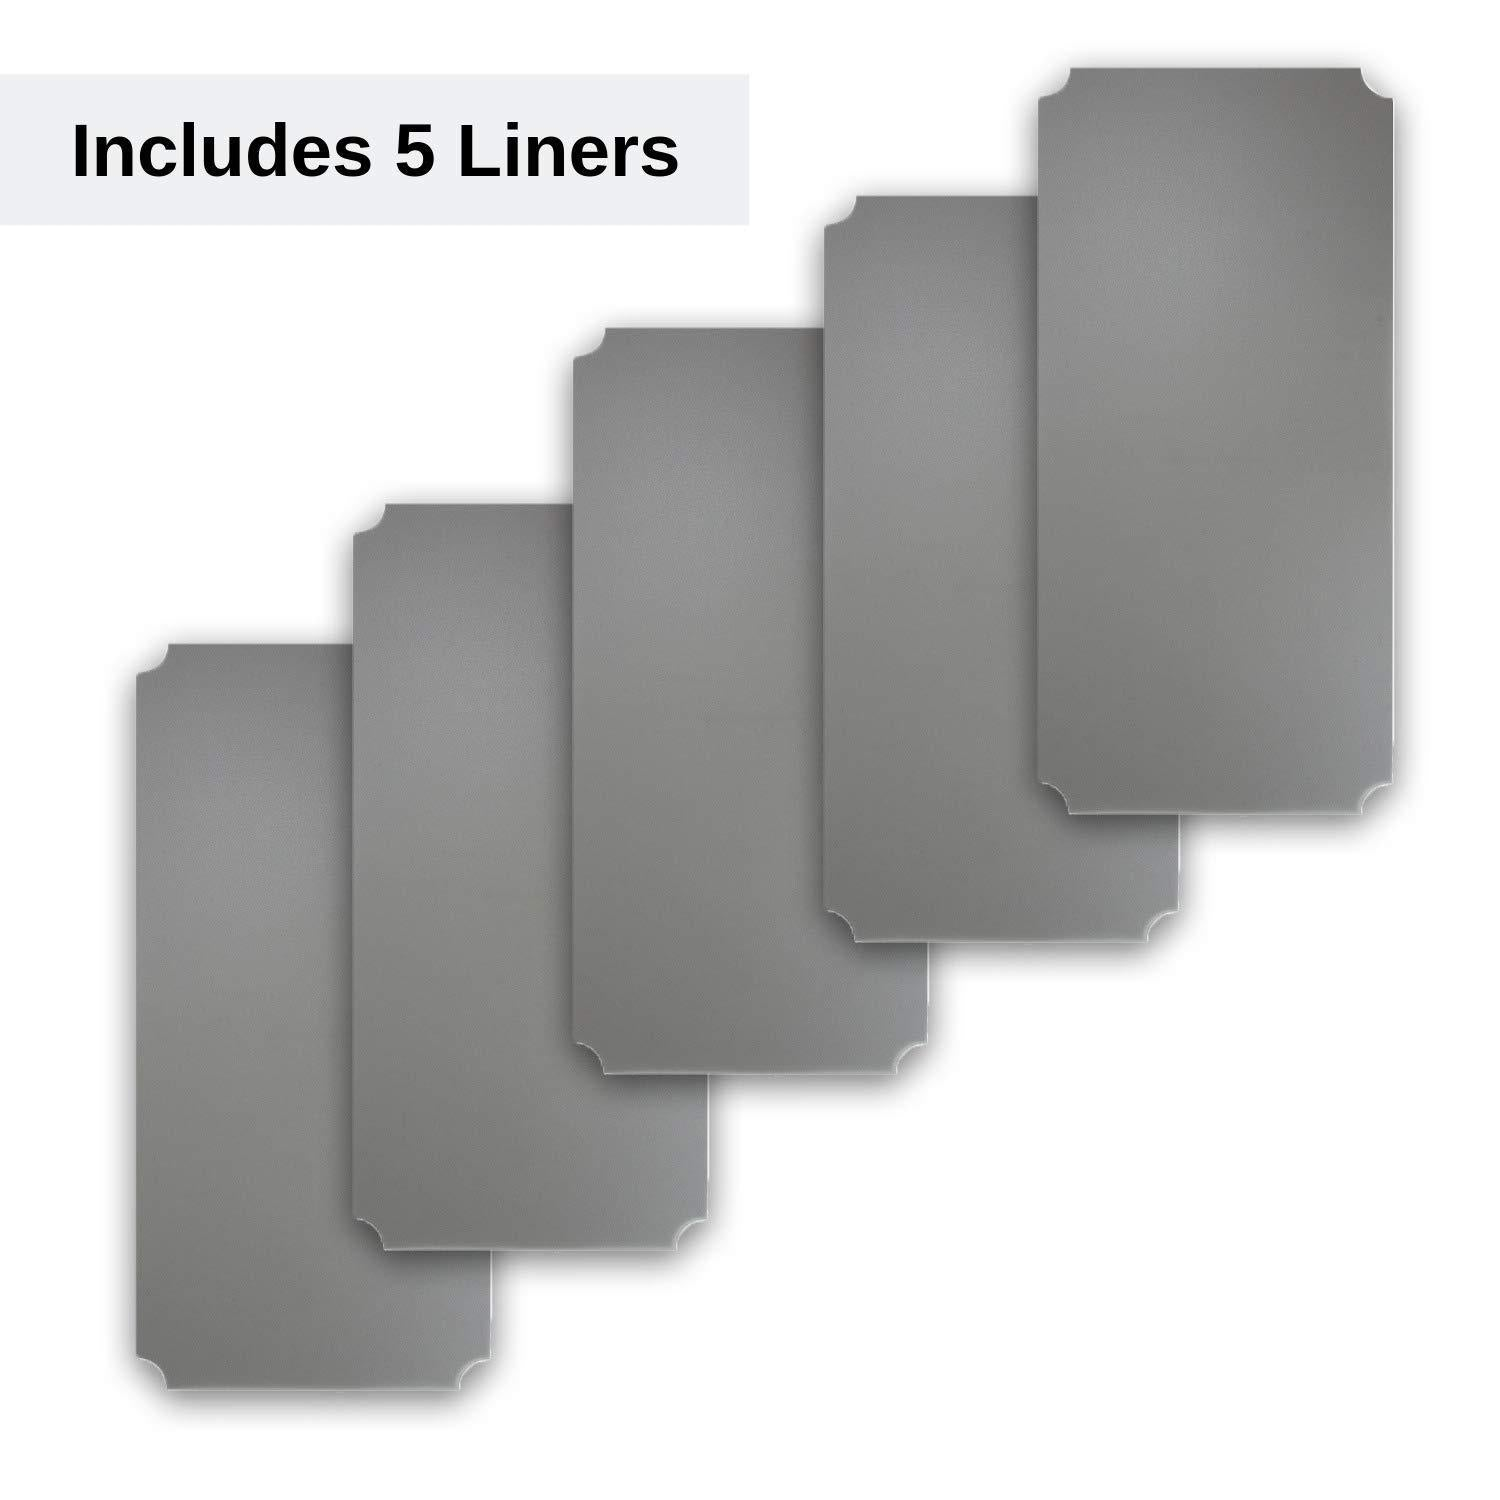 New houseables wire shelf liner plastic non adhesive 14x30 5 pk clear gray utility rack protector mats for drawers kitchen cabinet tier shelving unit cupboard heavy duty nonslip waterproof